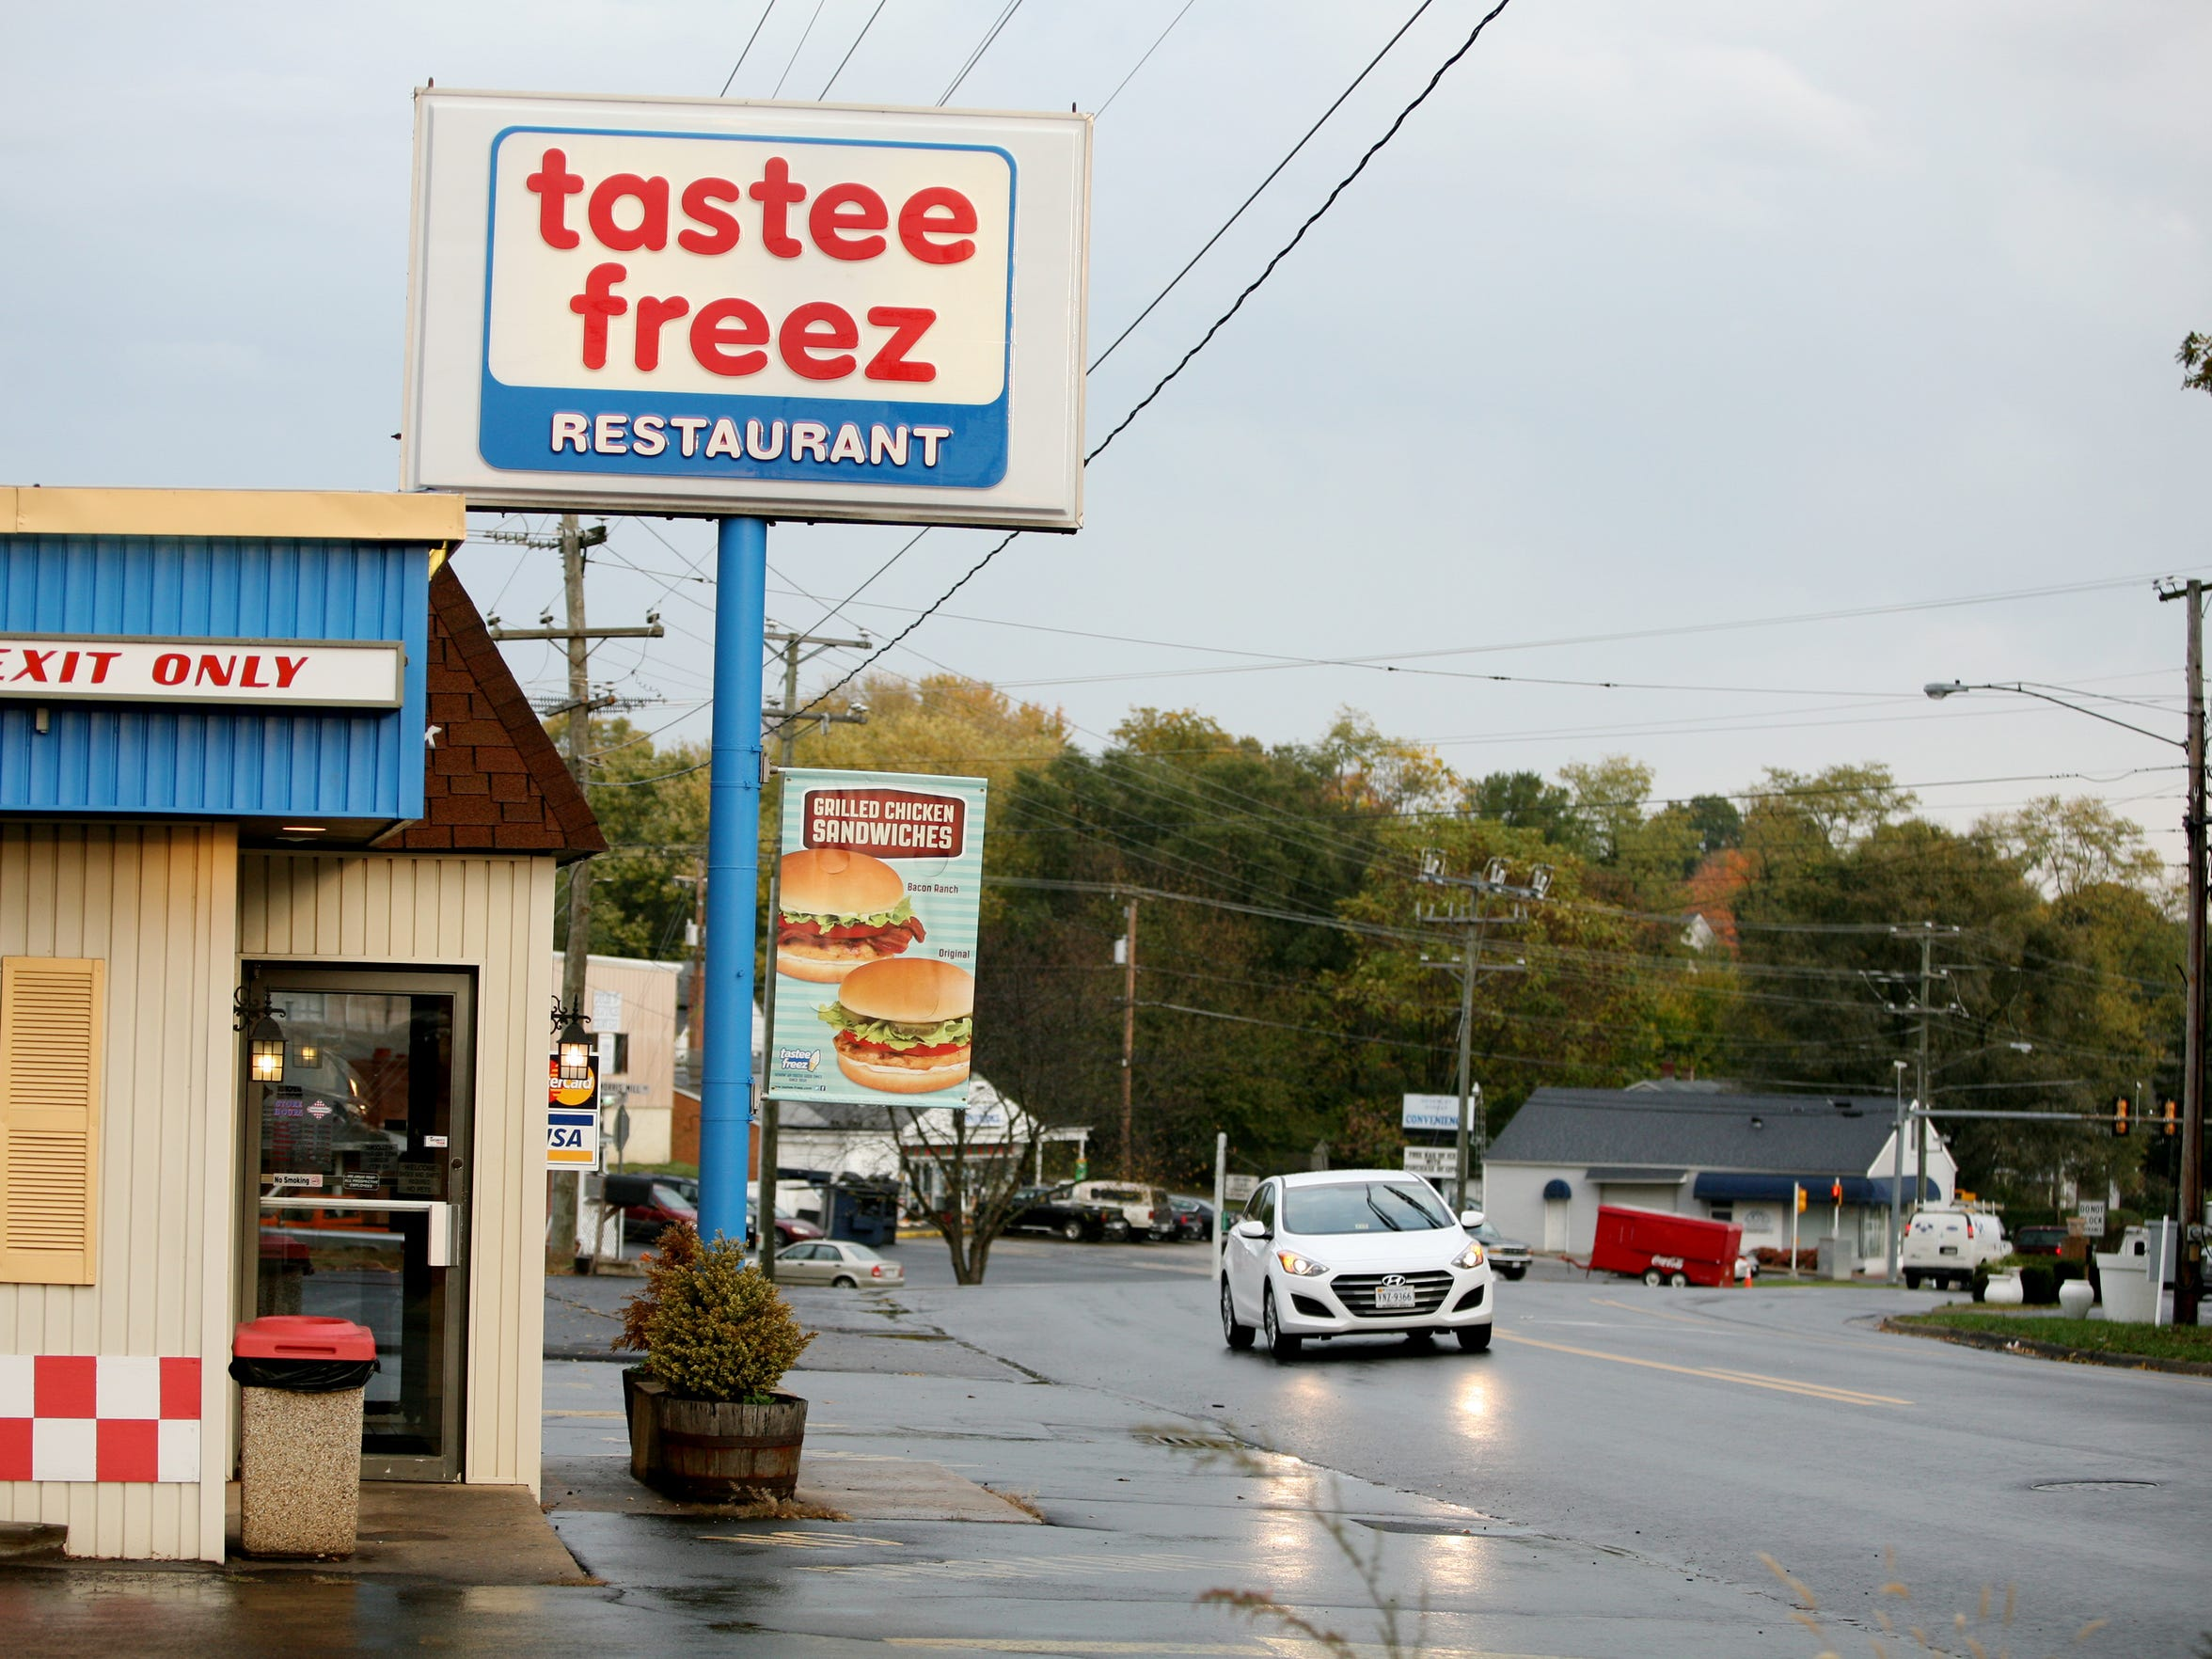 A Tastee Freez replaced Dairy Queen on West Beverley